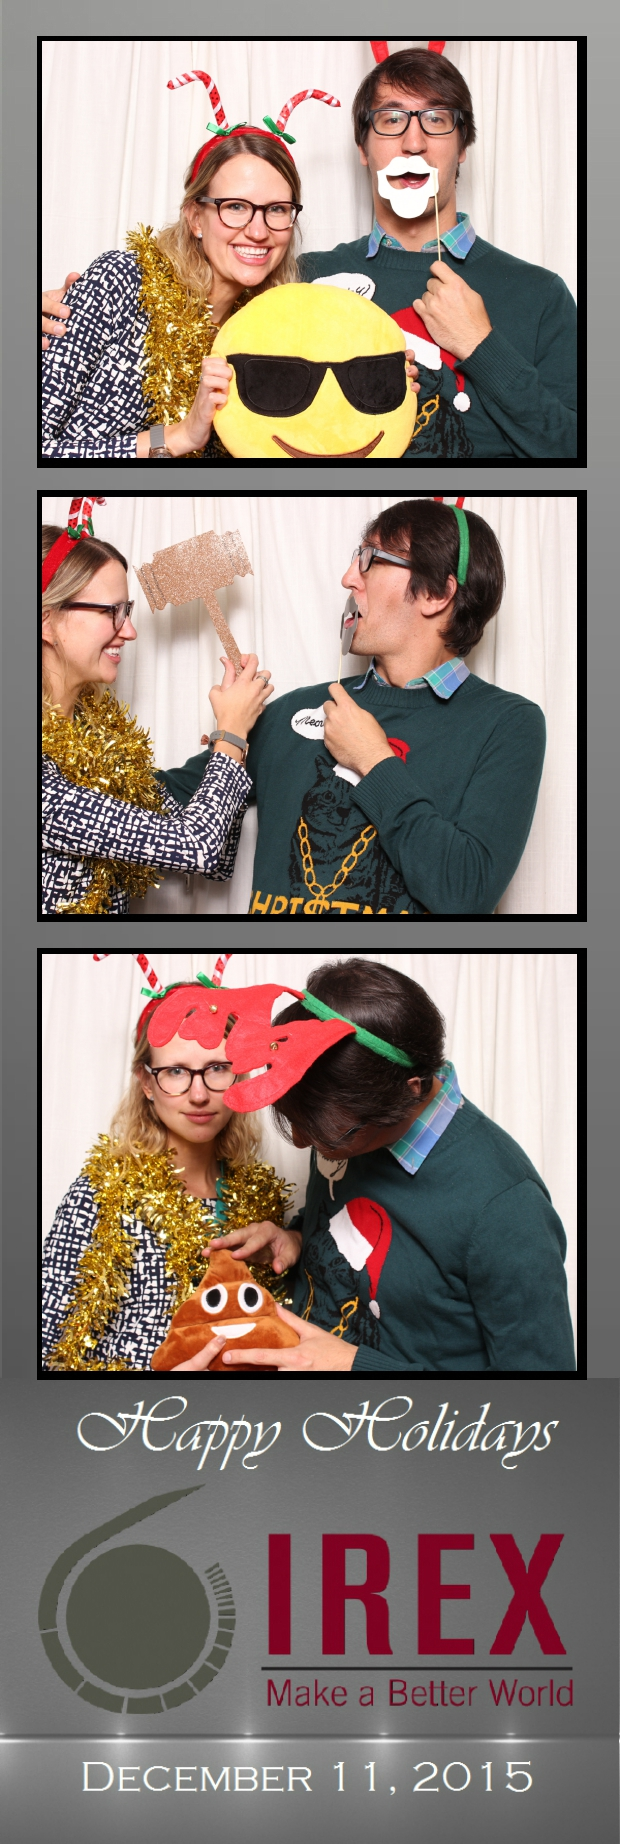 Guest House Events Photo Booth Strips IREX (51).jpg